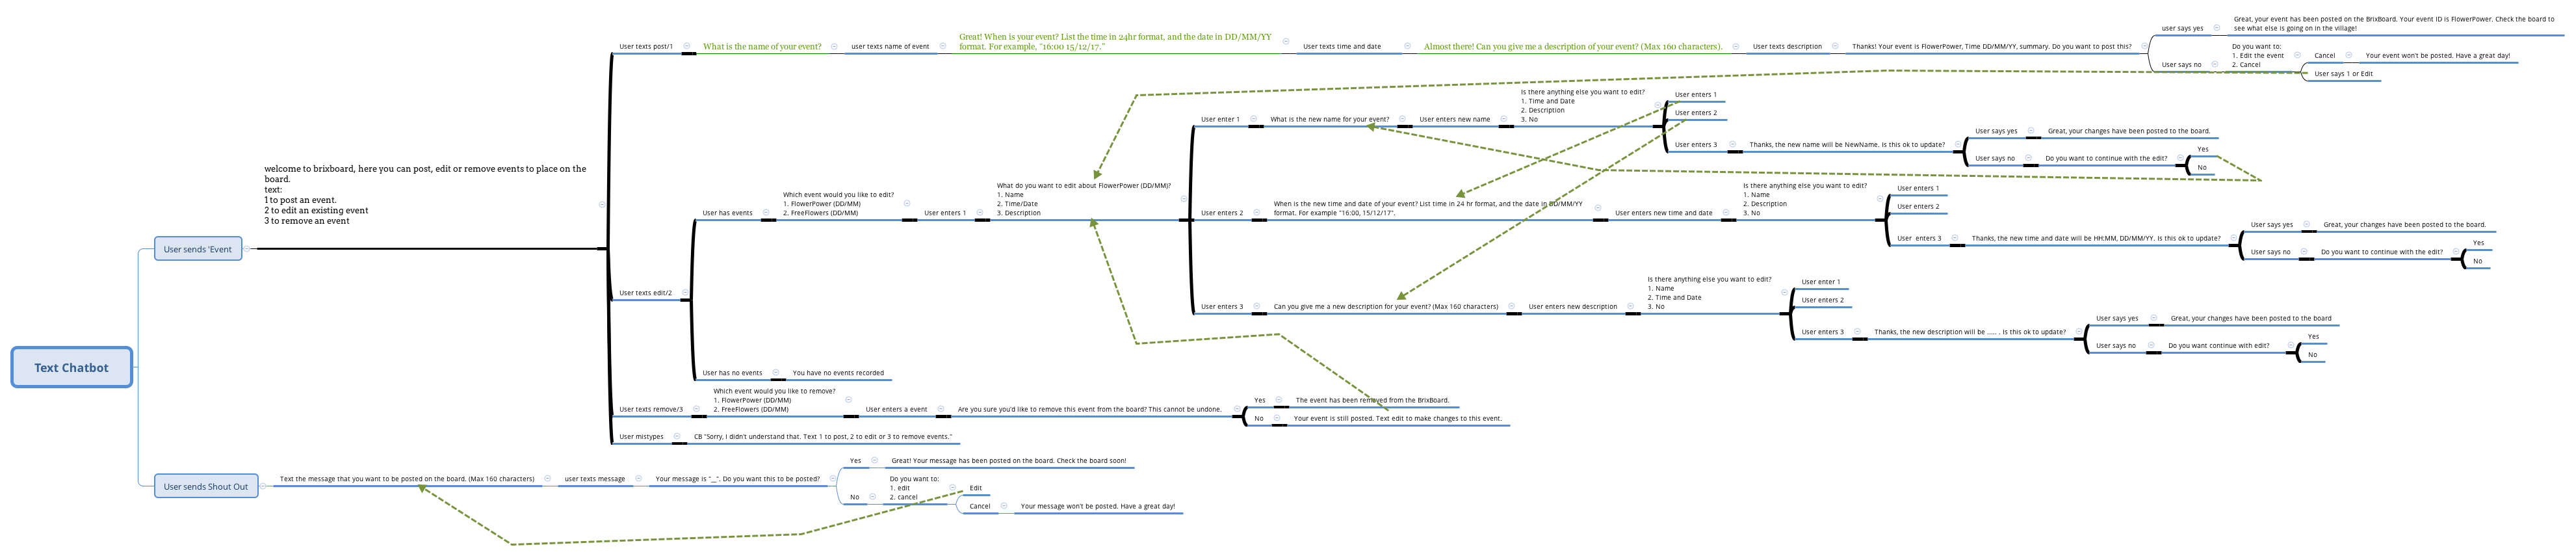 diagram showing possible branches for chatbot